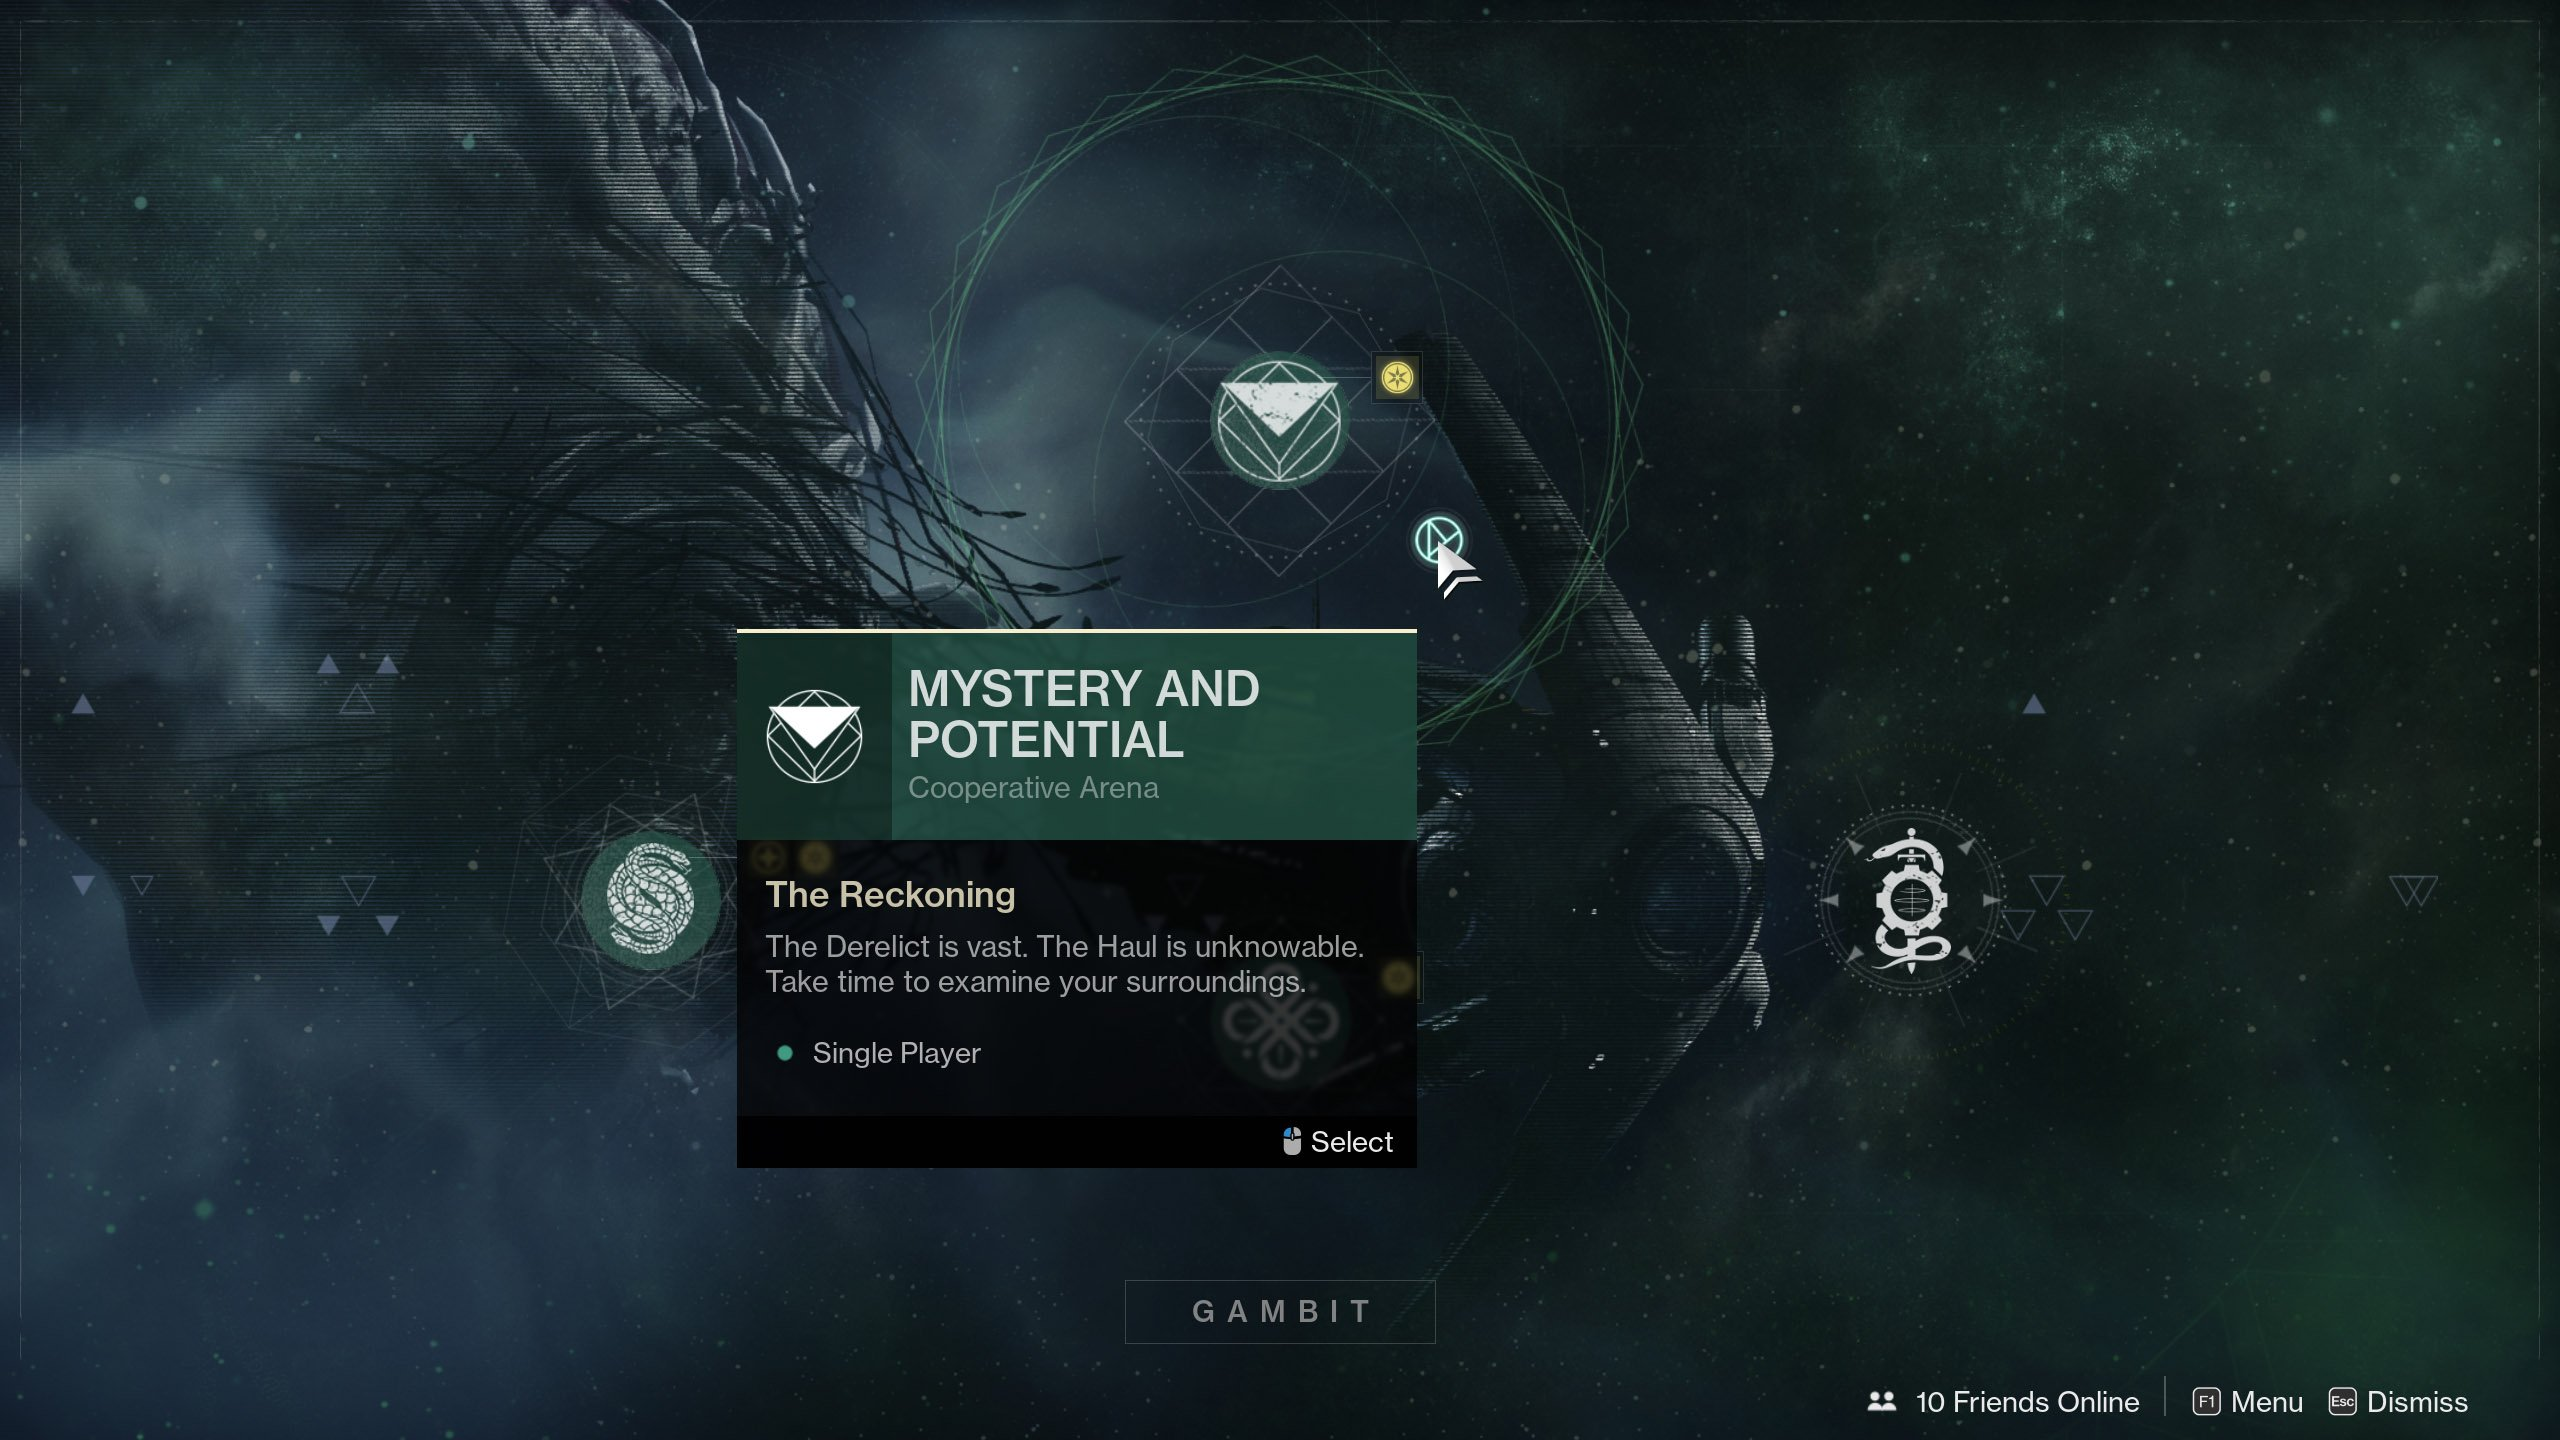 Mystery and Potential Mission in Destiny 2